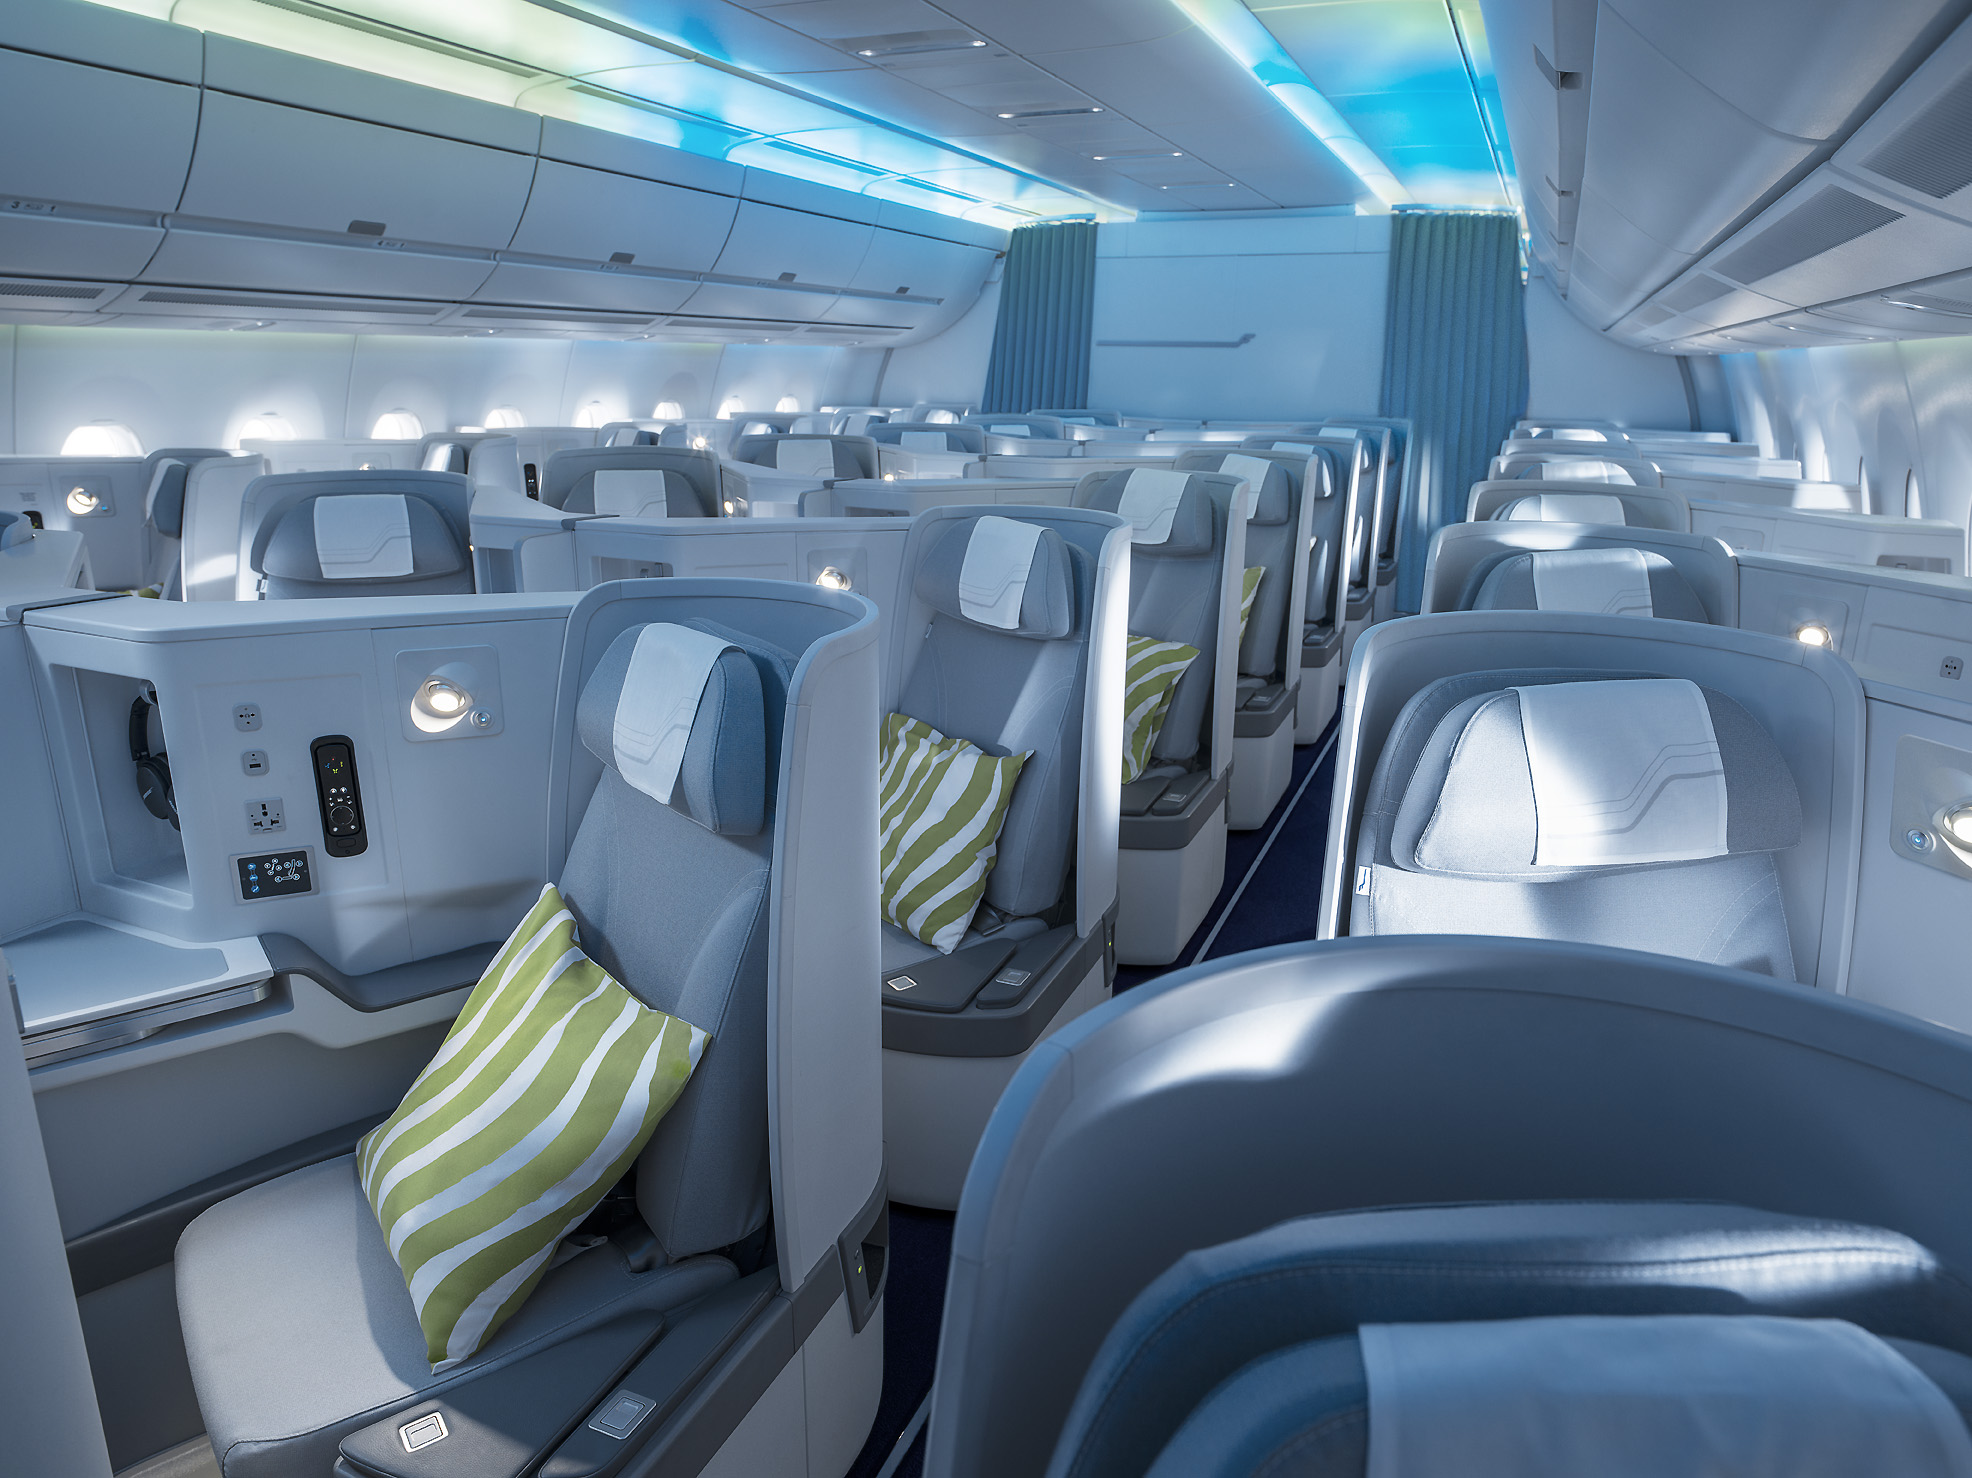 Finnair cheap business class asia flights from 1178 plus earn avios tier points turning - Delta airlines hong kong office ...